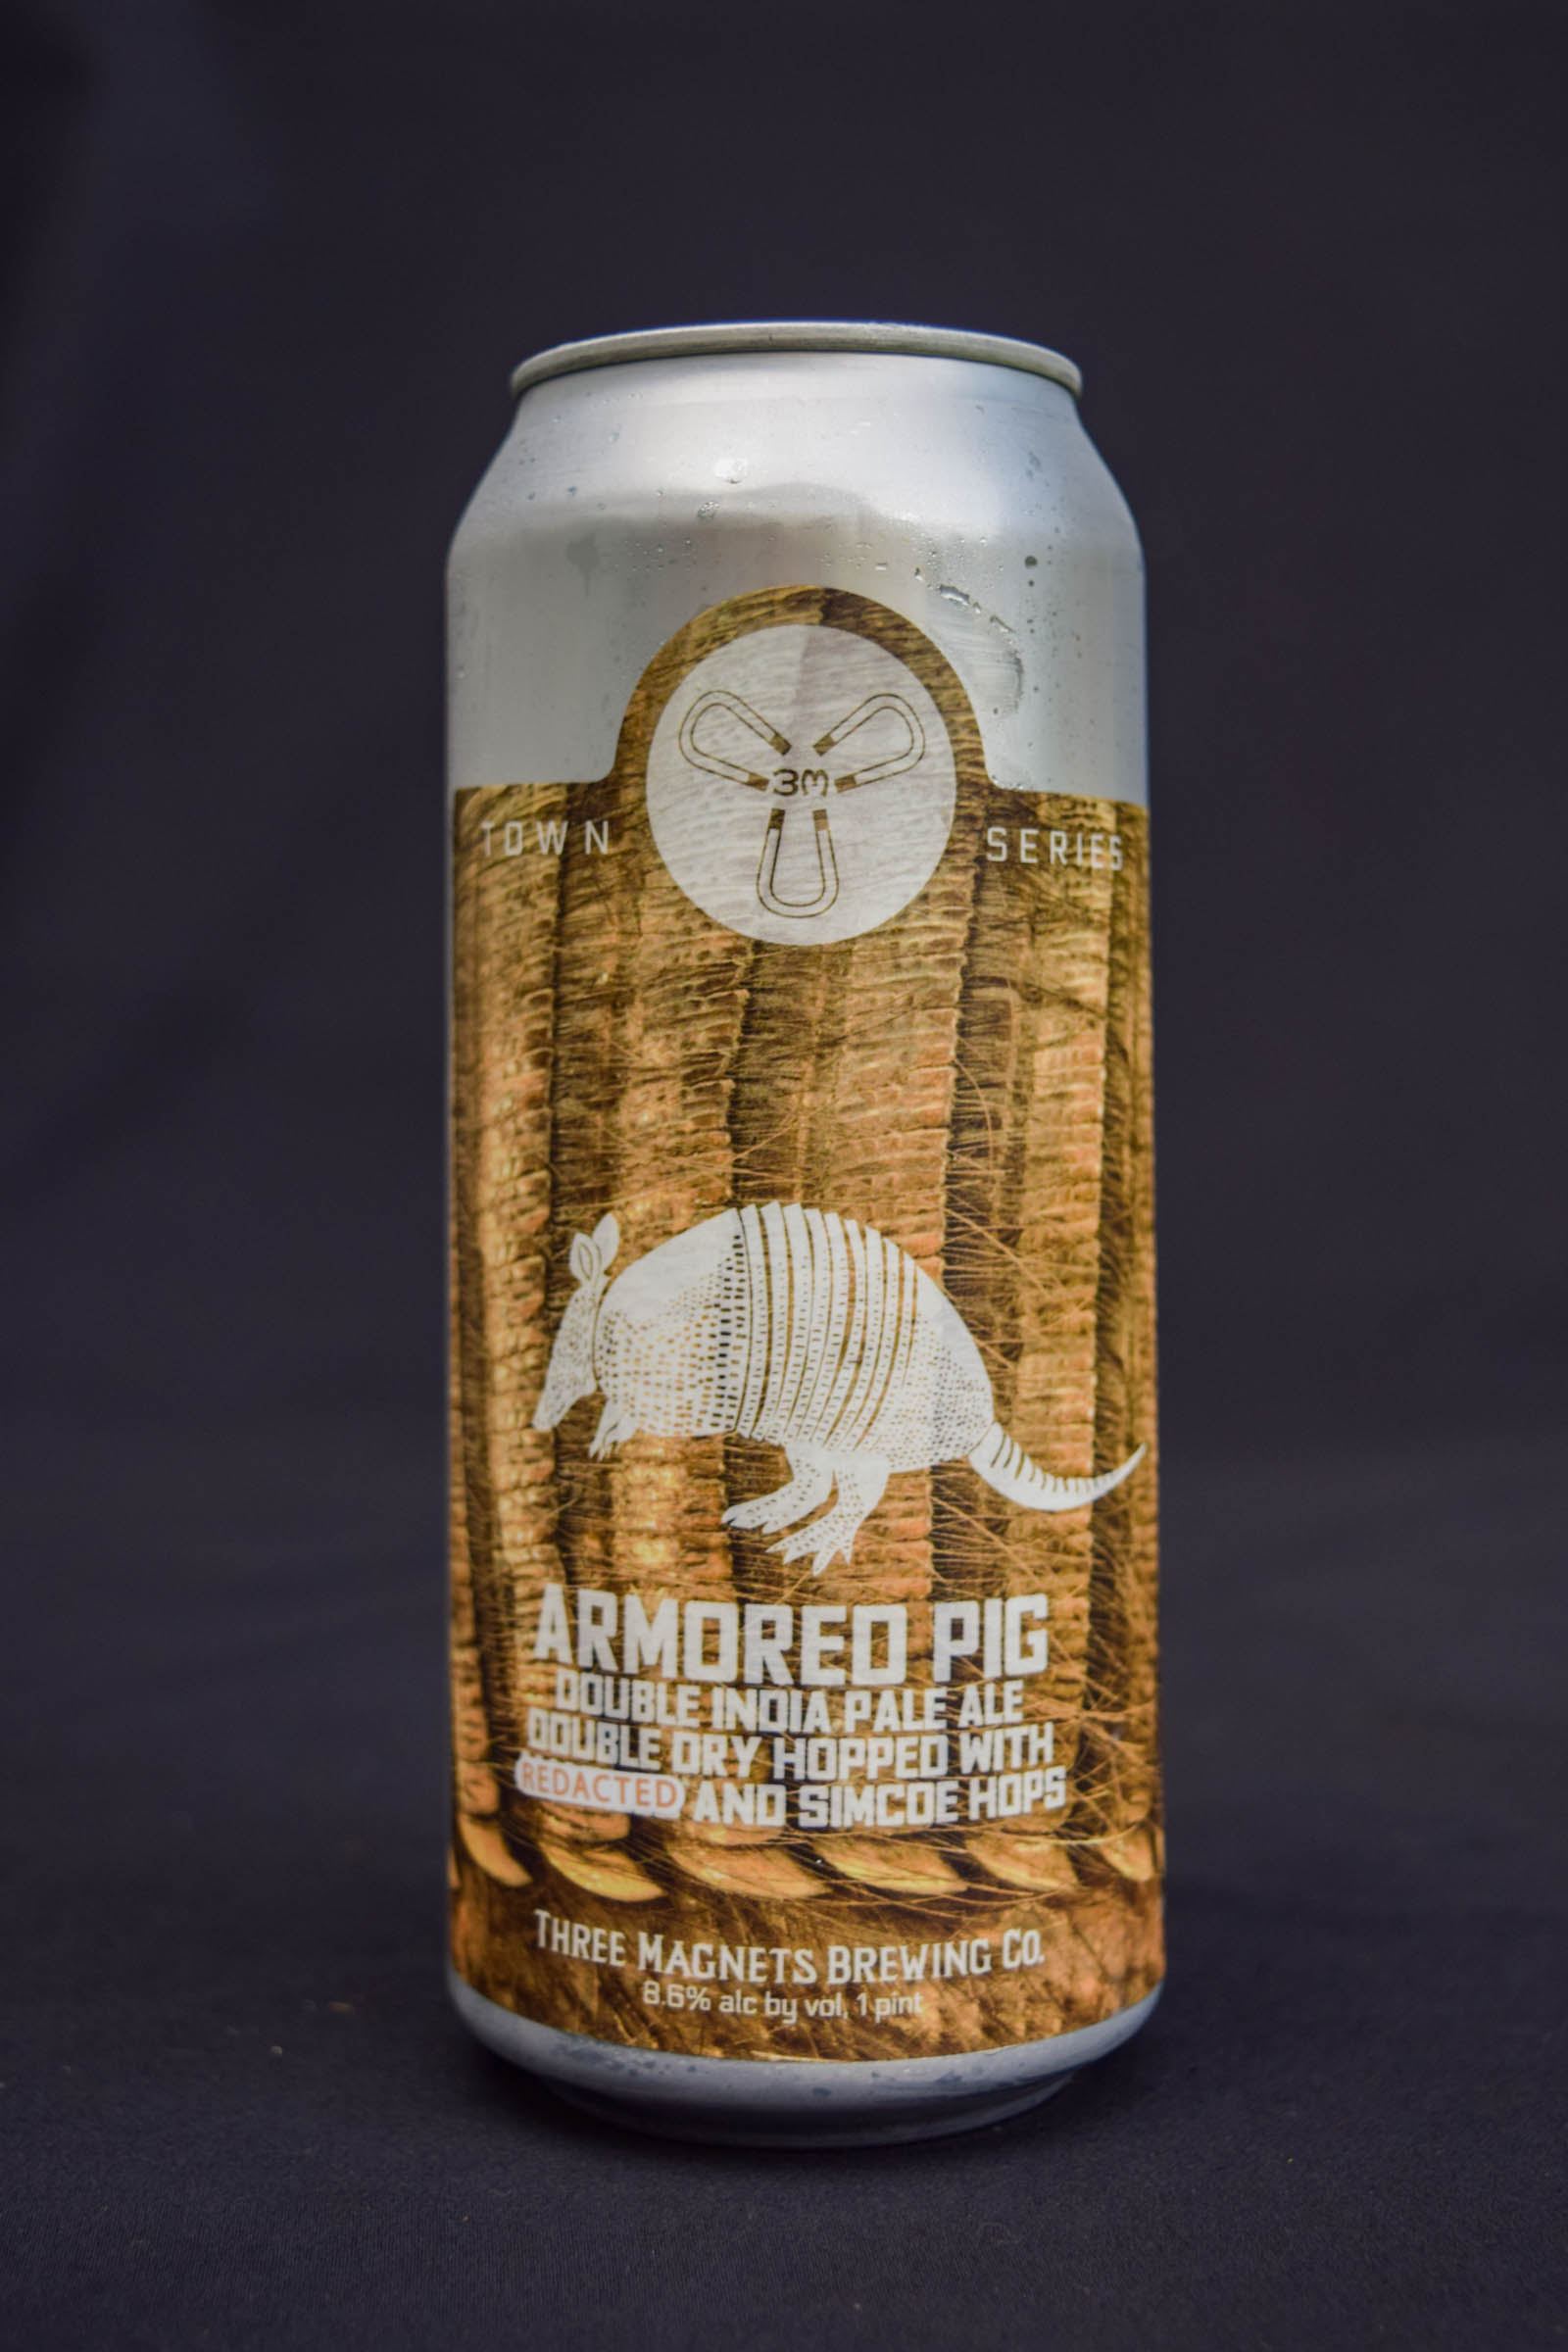 3 Magnets Brewing Armored Pig DIPA